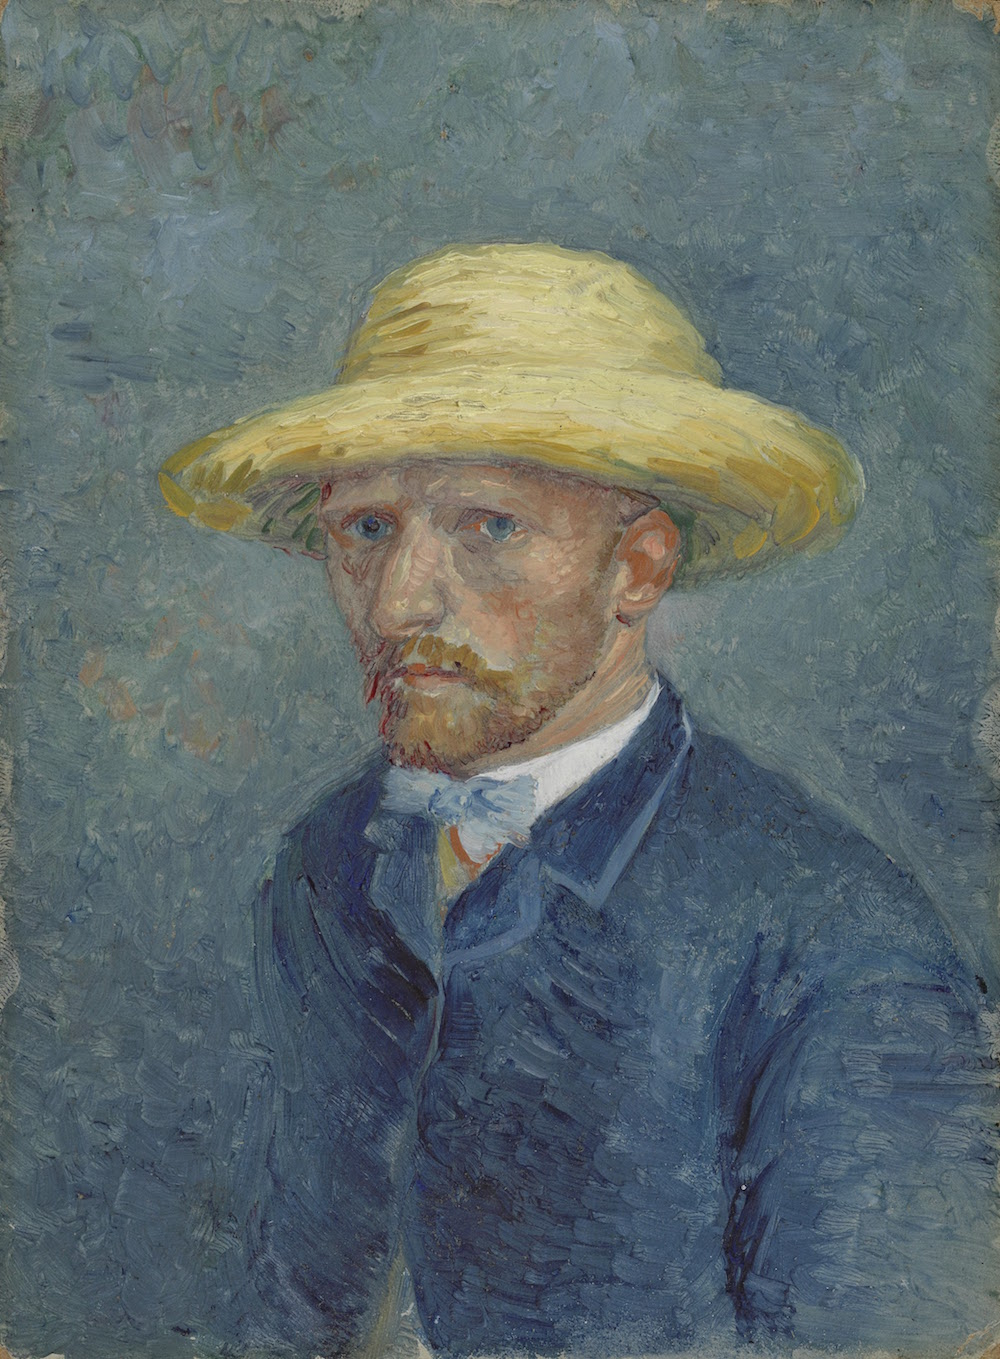 Portrait of Theo van Gogh, 1887, by Vincent van Gogh.